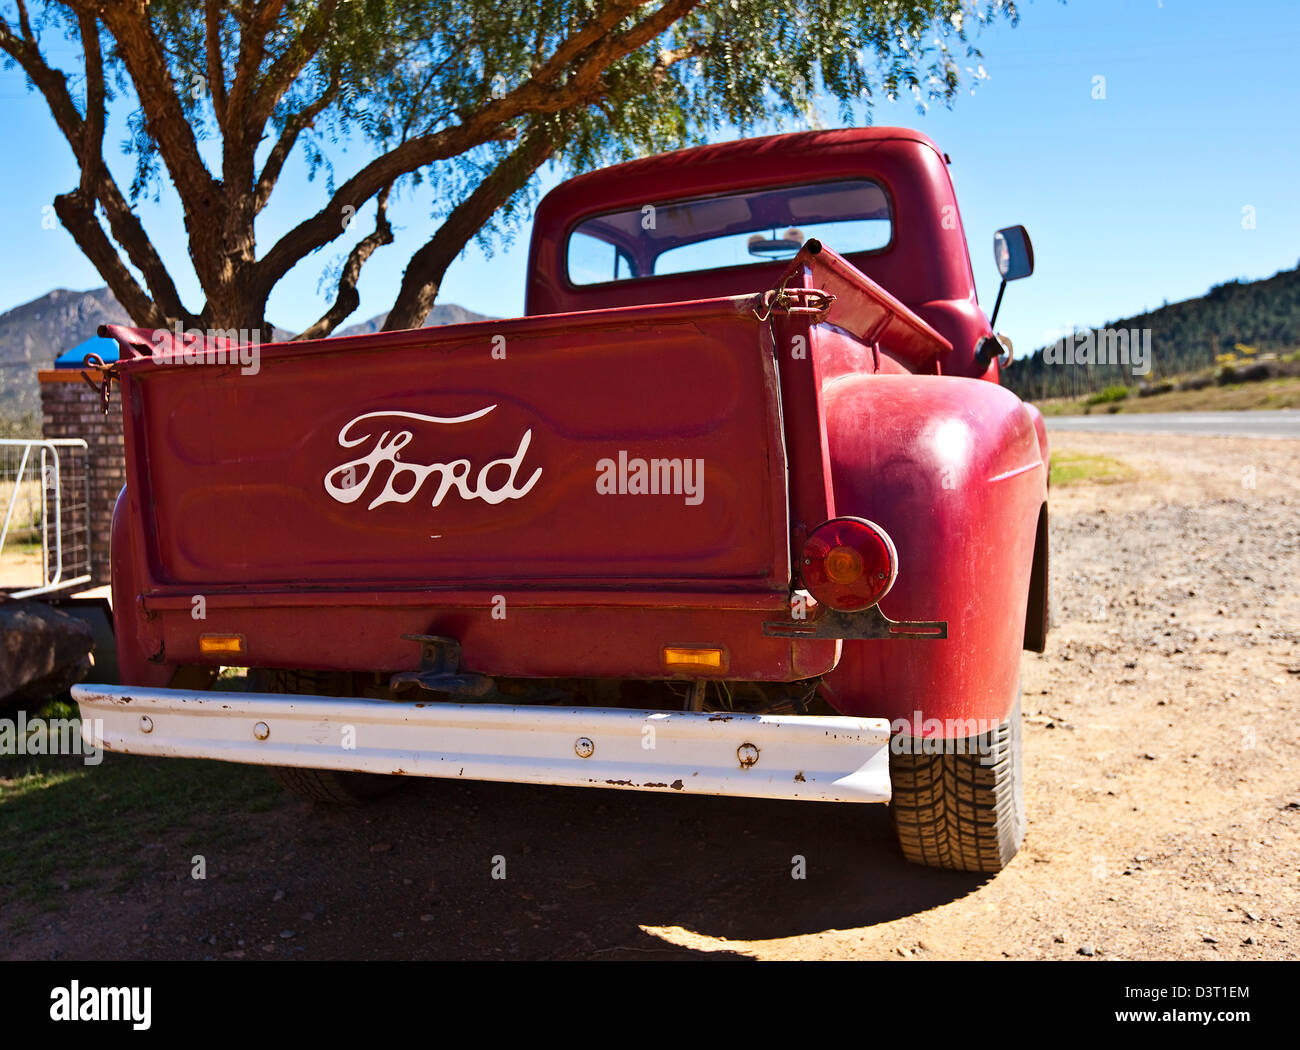 Vintage Red Ford Pickup Truck Stock Photos 1955 F100 Running Boards South Africa Image